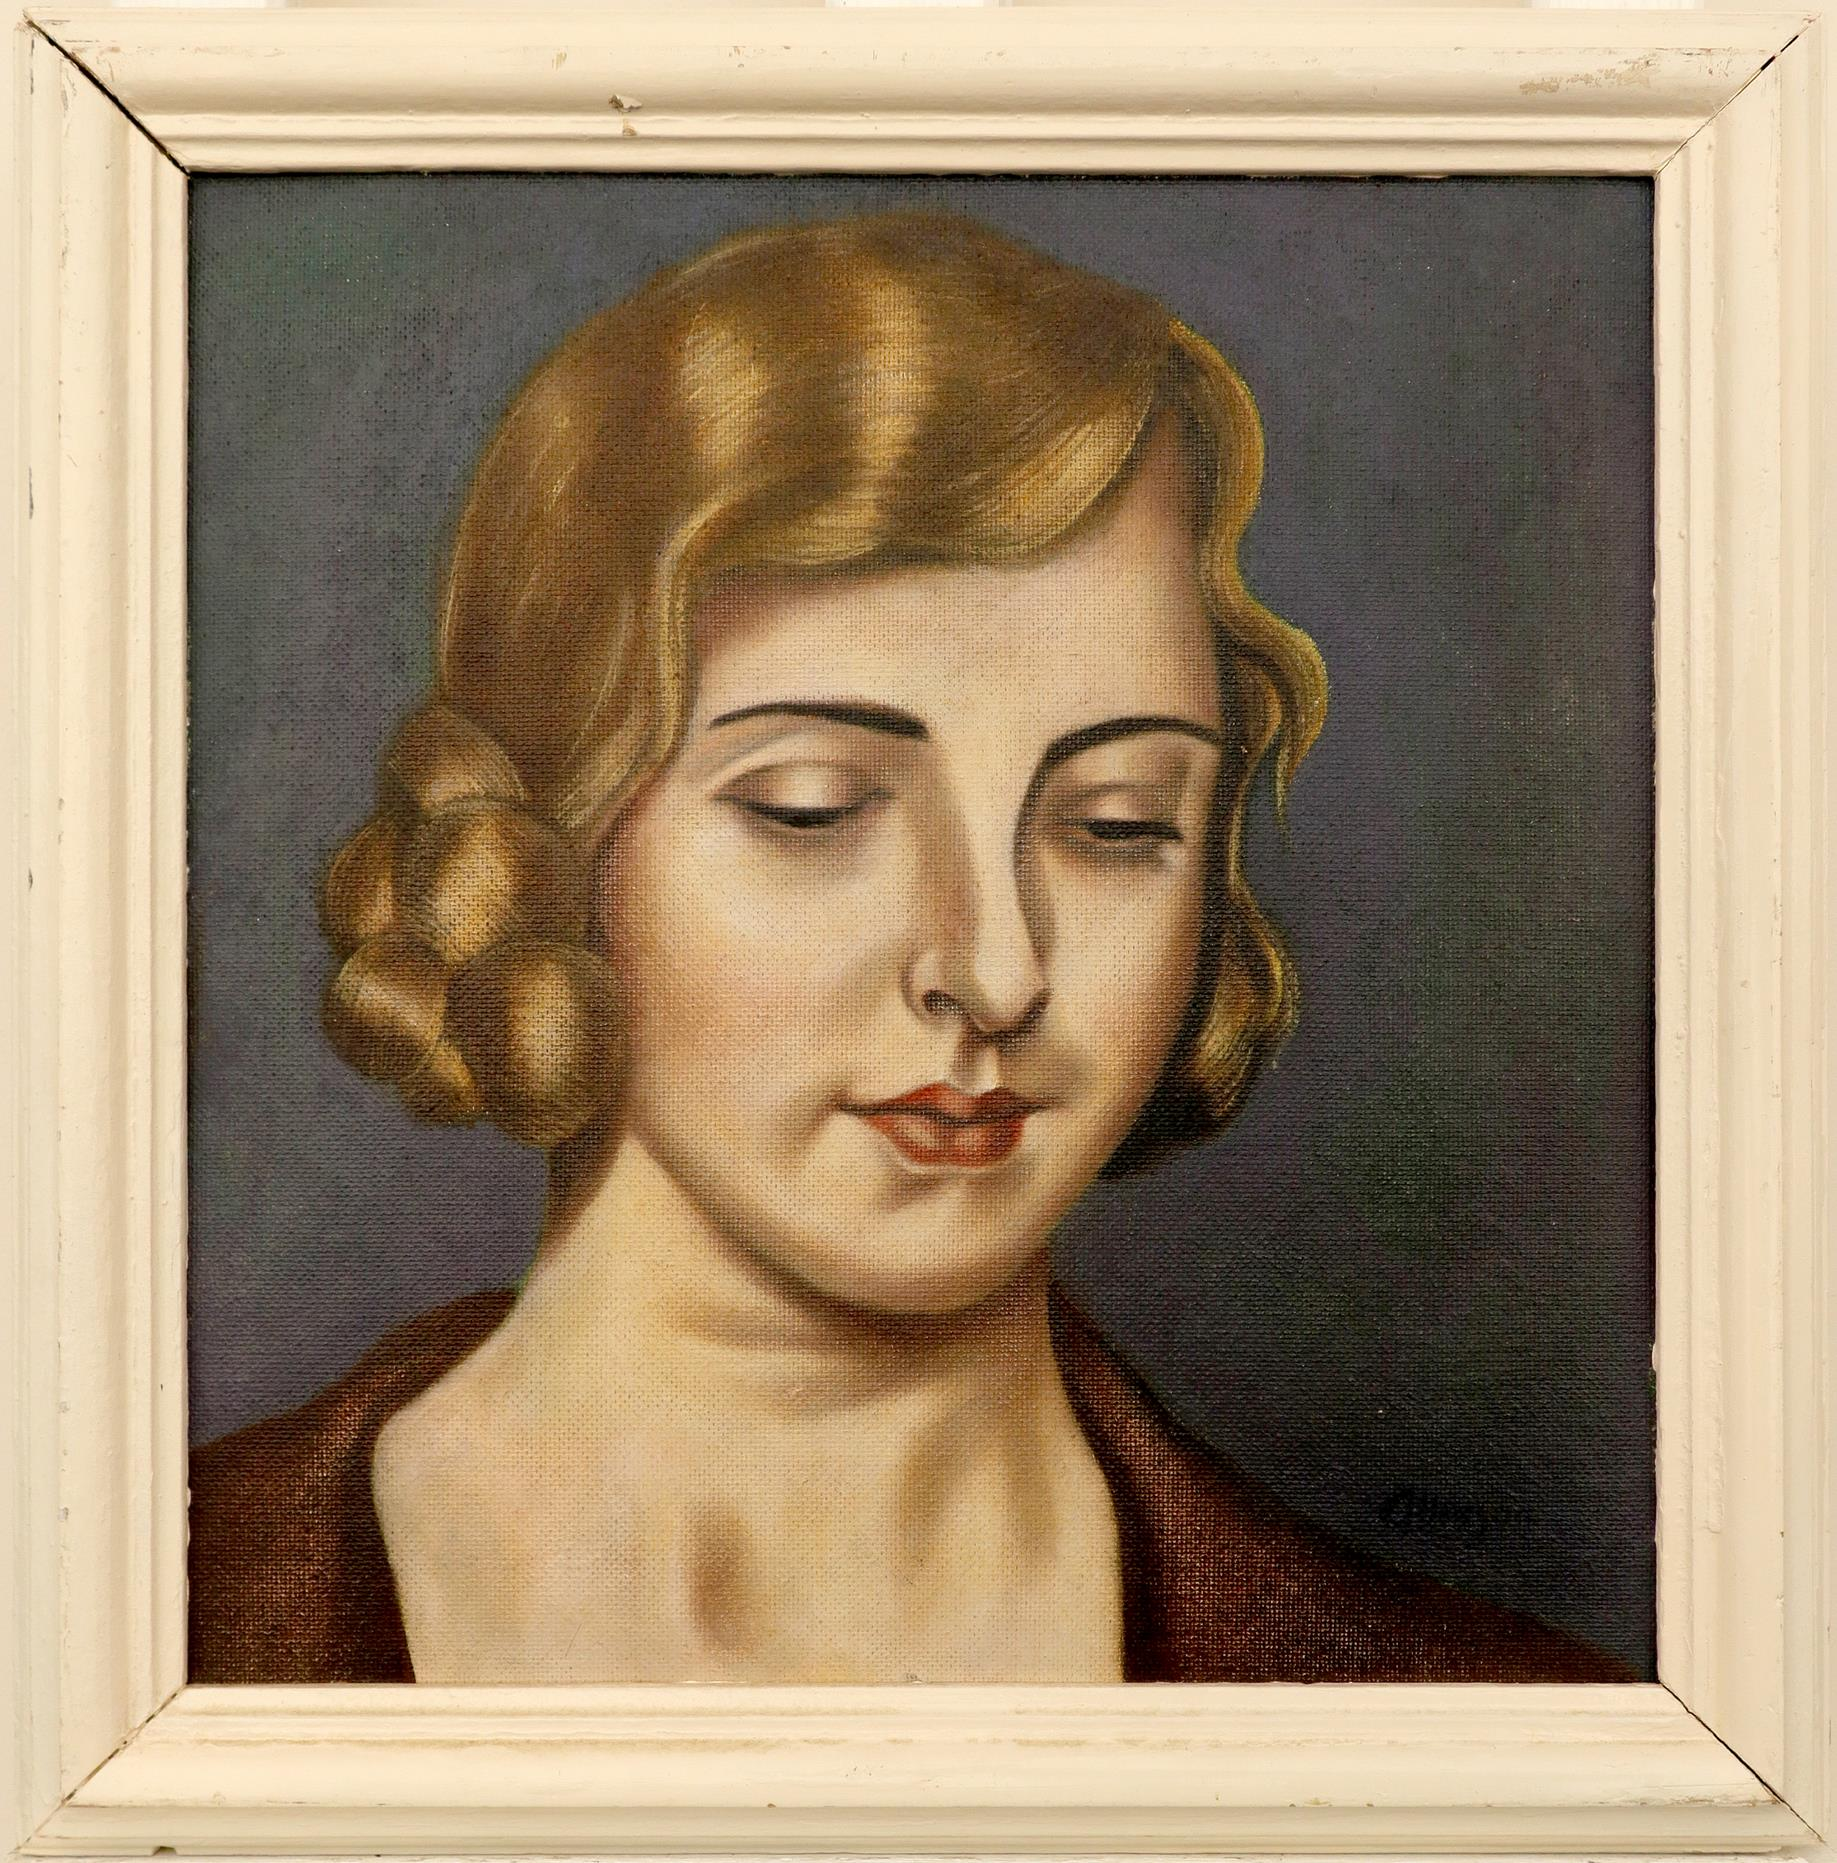 ‡Adrian Allinson ROI (1890-1959) Portrait of a young lady, possibly Laura Knight Signed allinson - Image 2 of 3